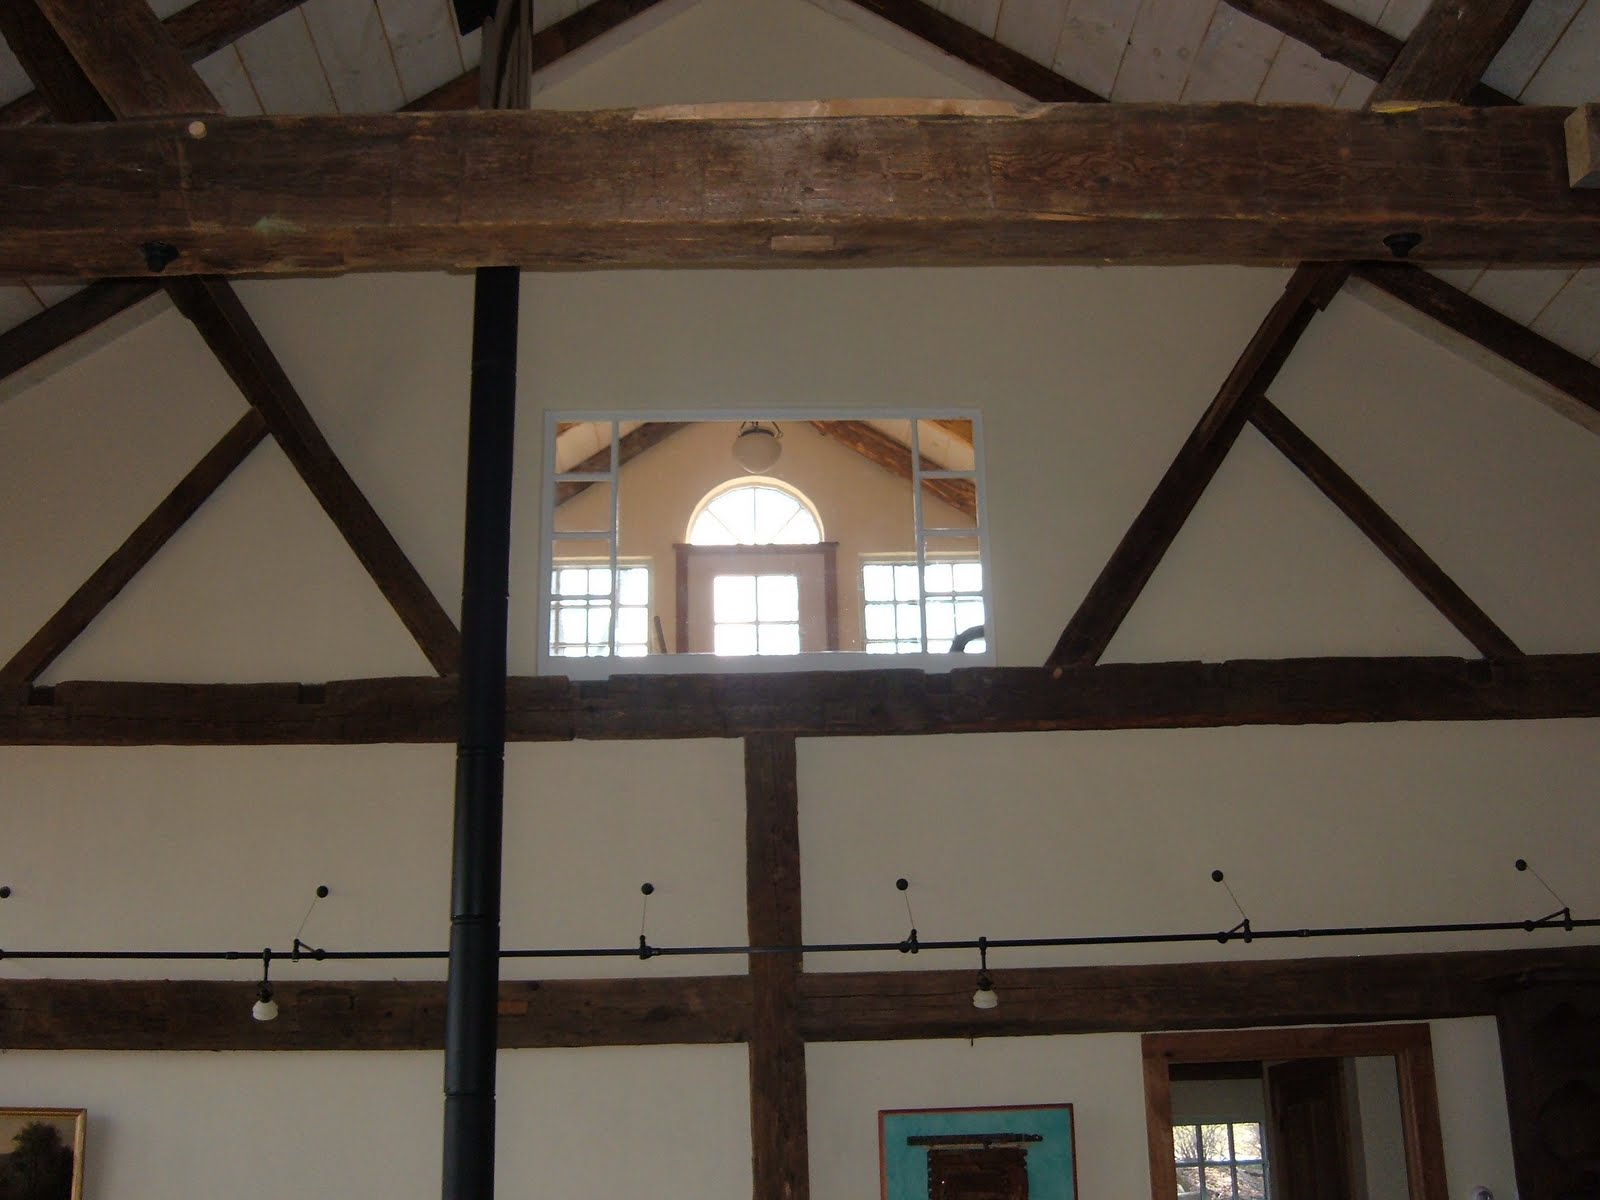 View from the main room to the sudio above.